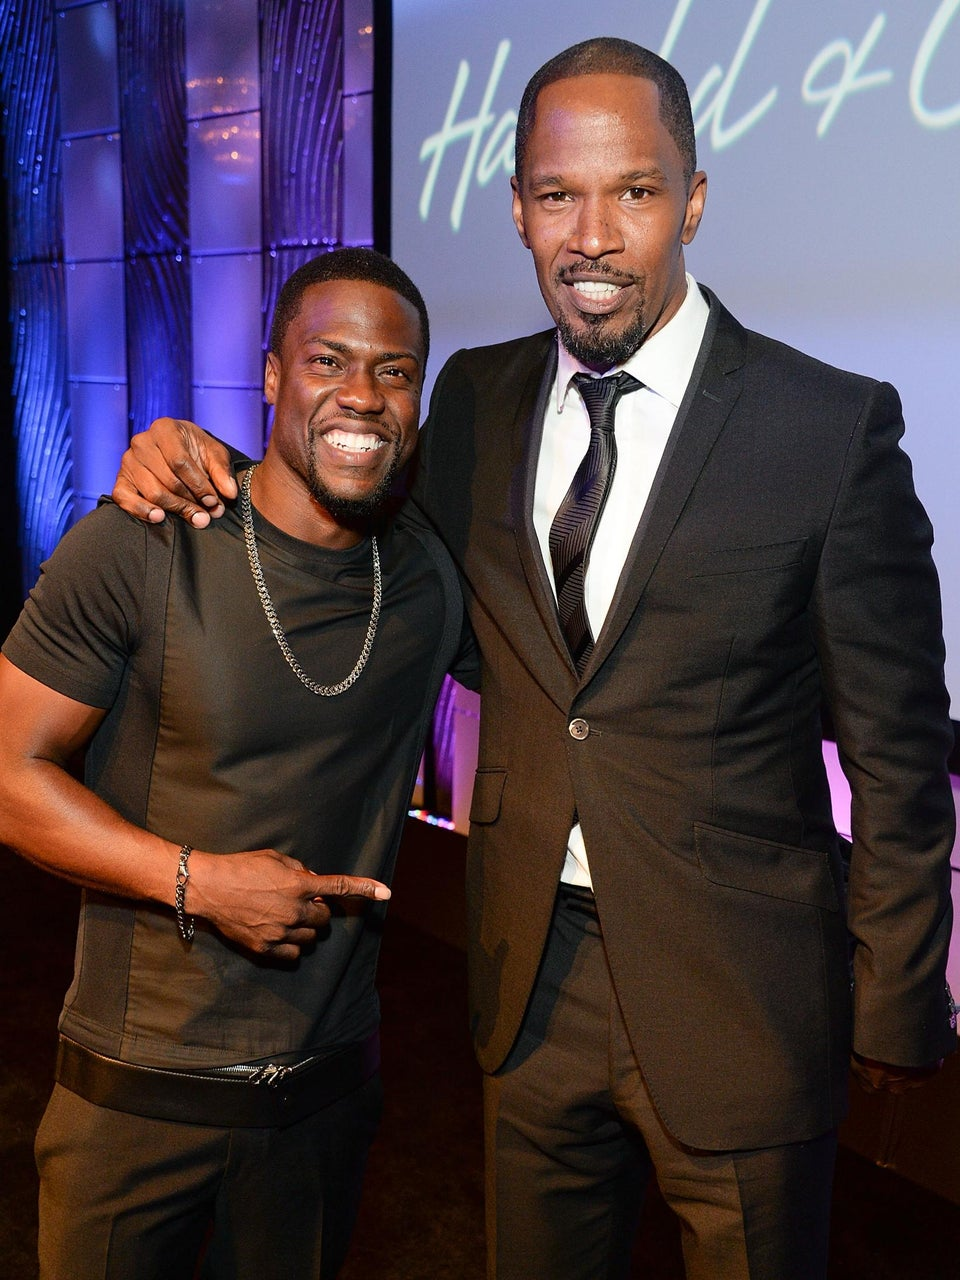 Coffee Talk: Jamie Foxx and Kevin Hart in Talks to Star in 'Black Phantom'